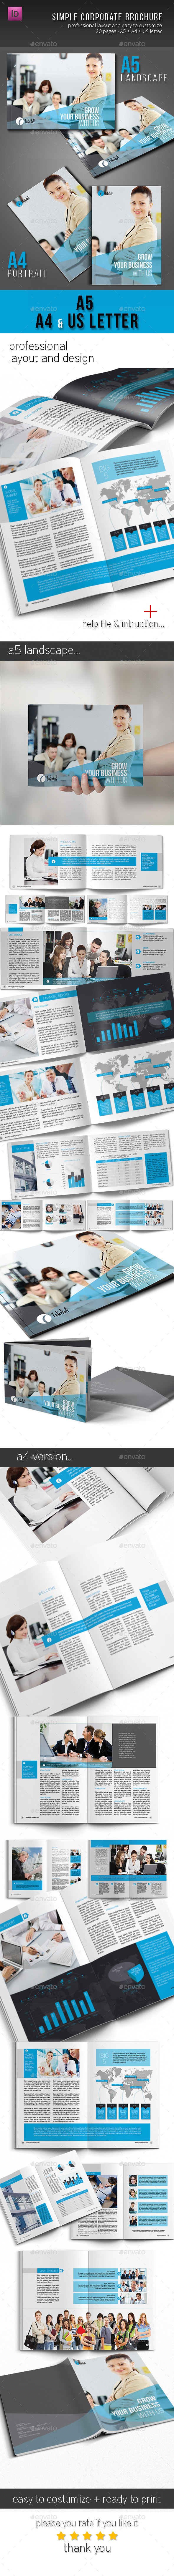 GraphicRiver Corportate & Business Brochure Template Design 10680364